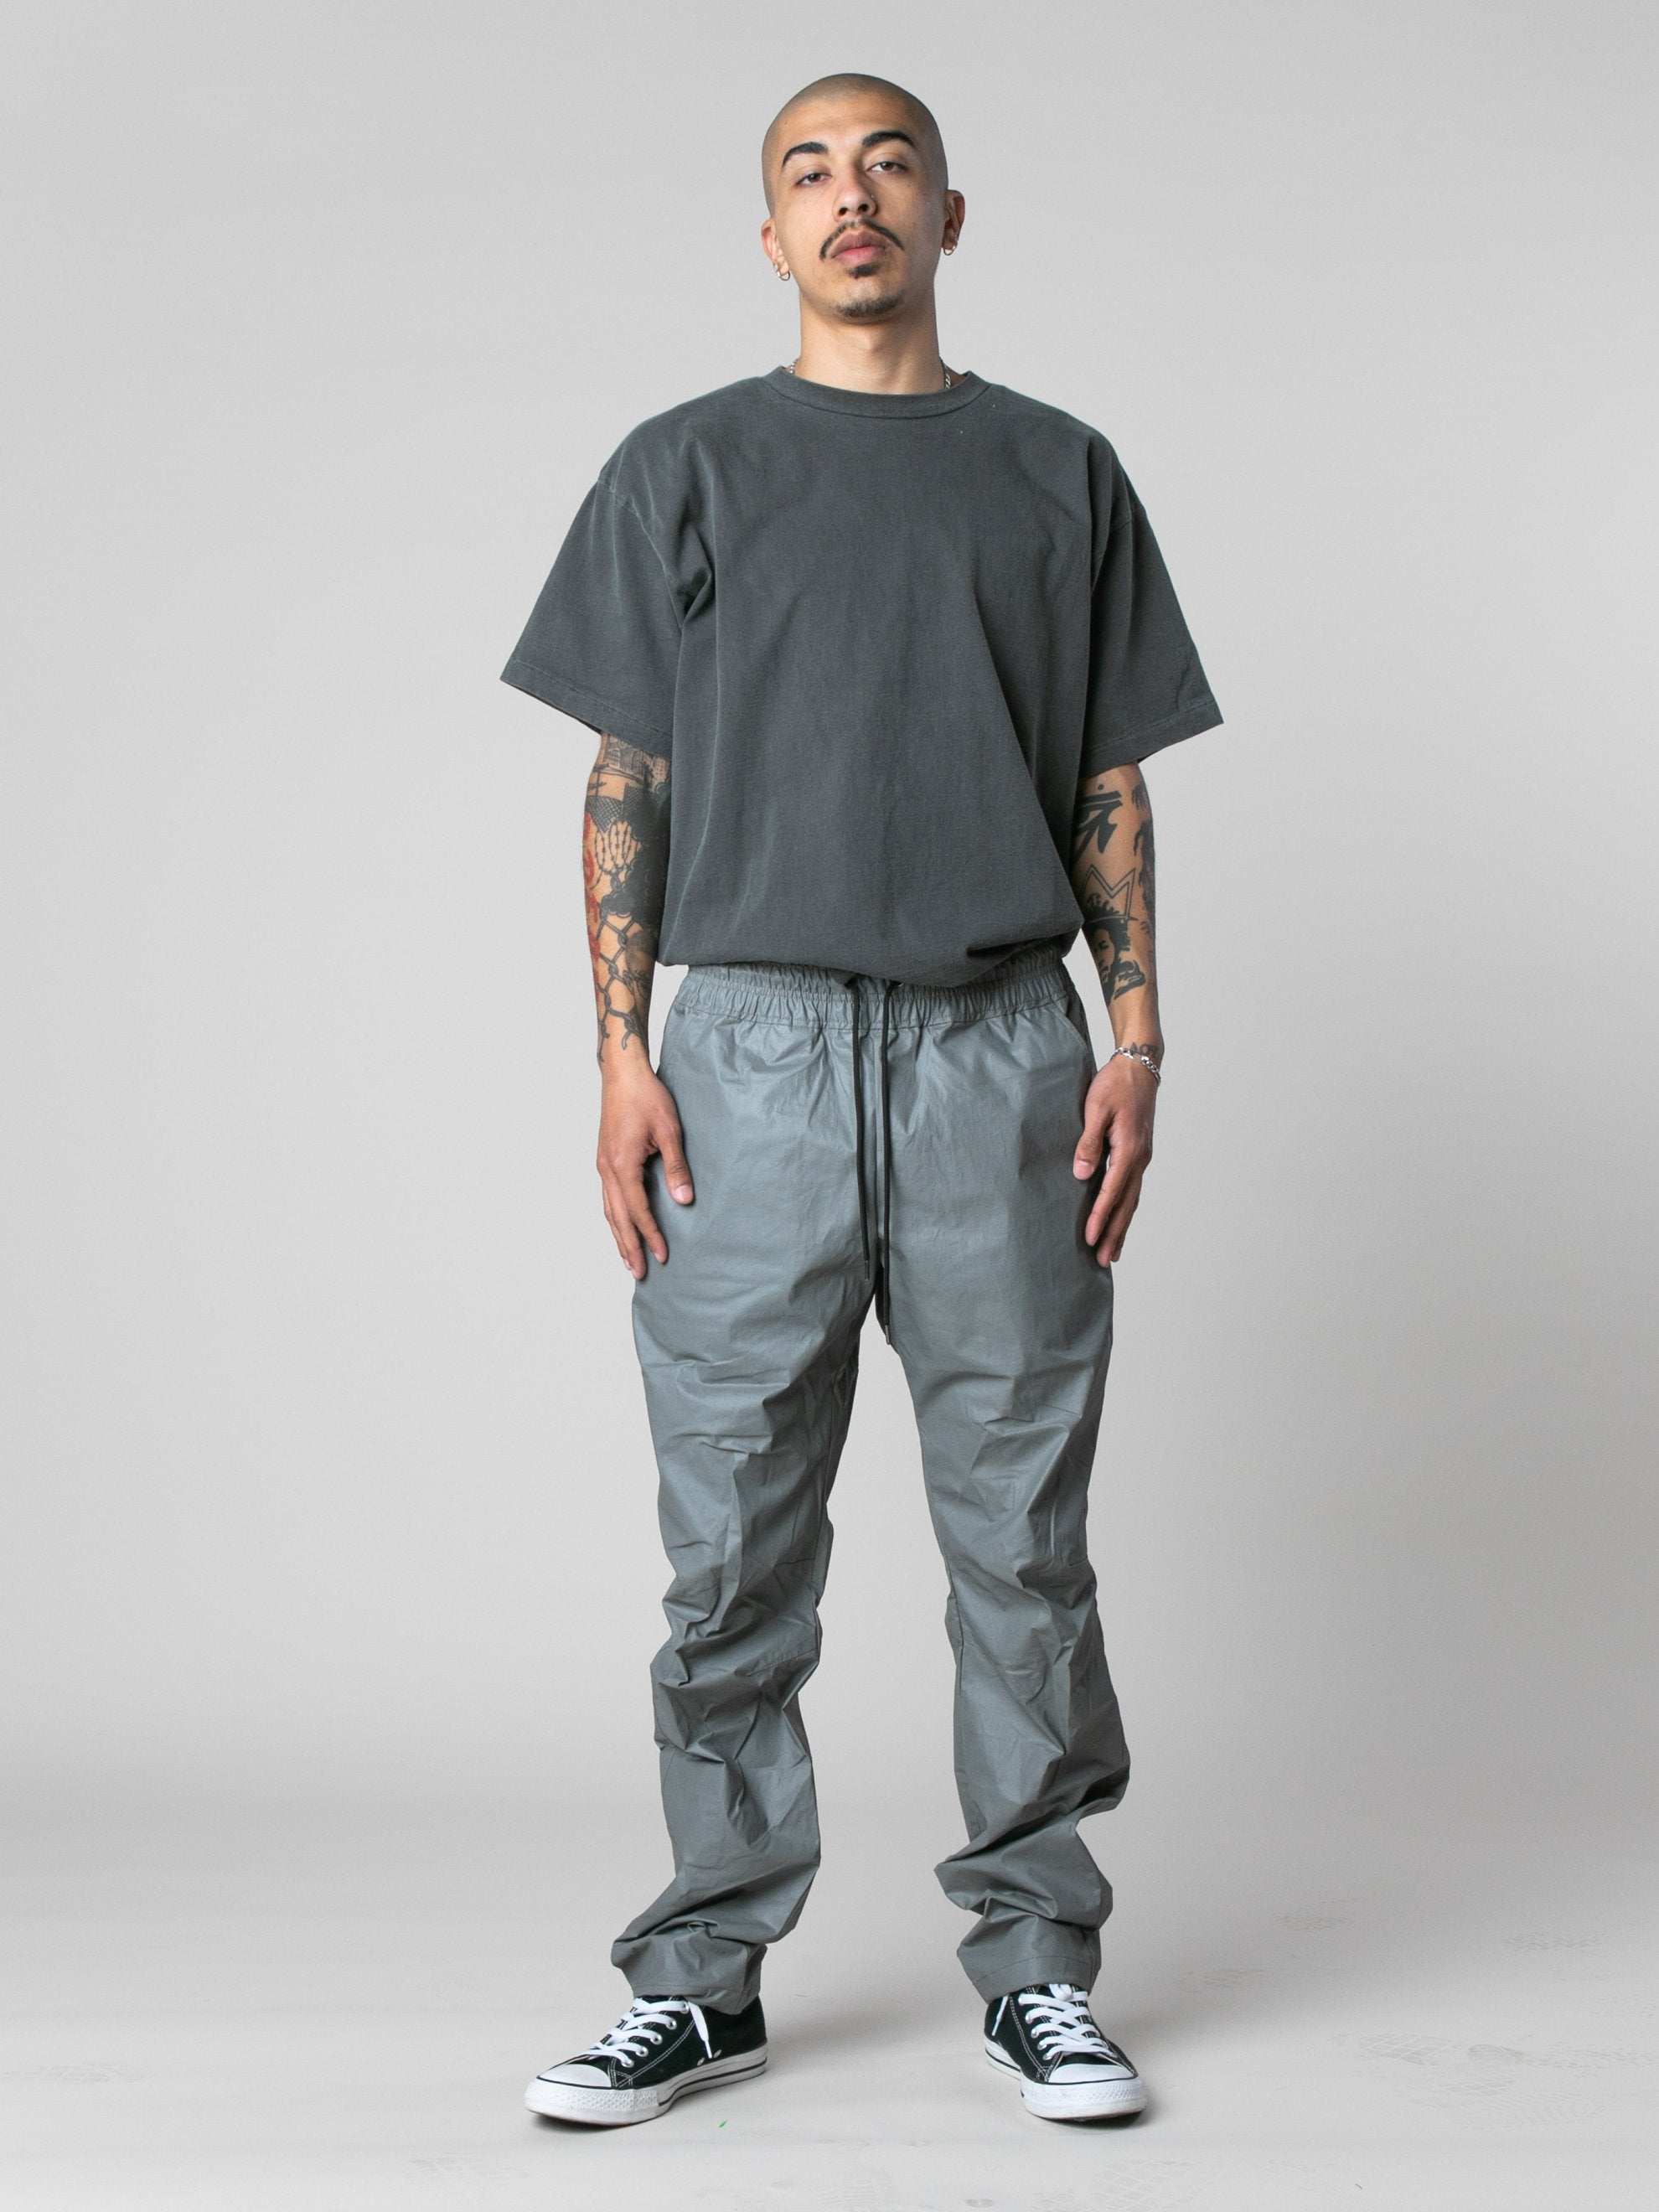 Carbon Sochi Sweatpants 3